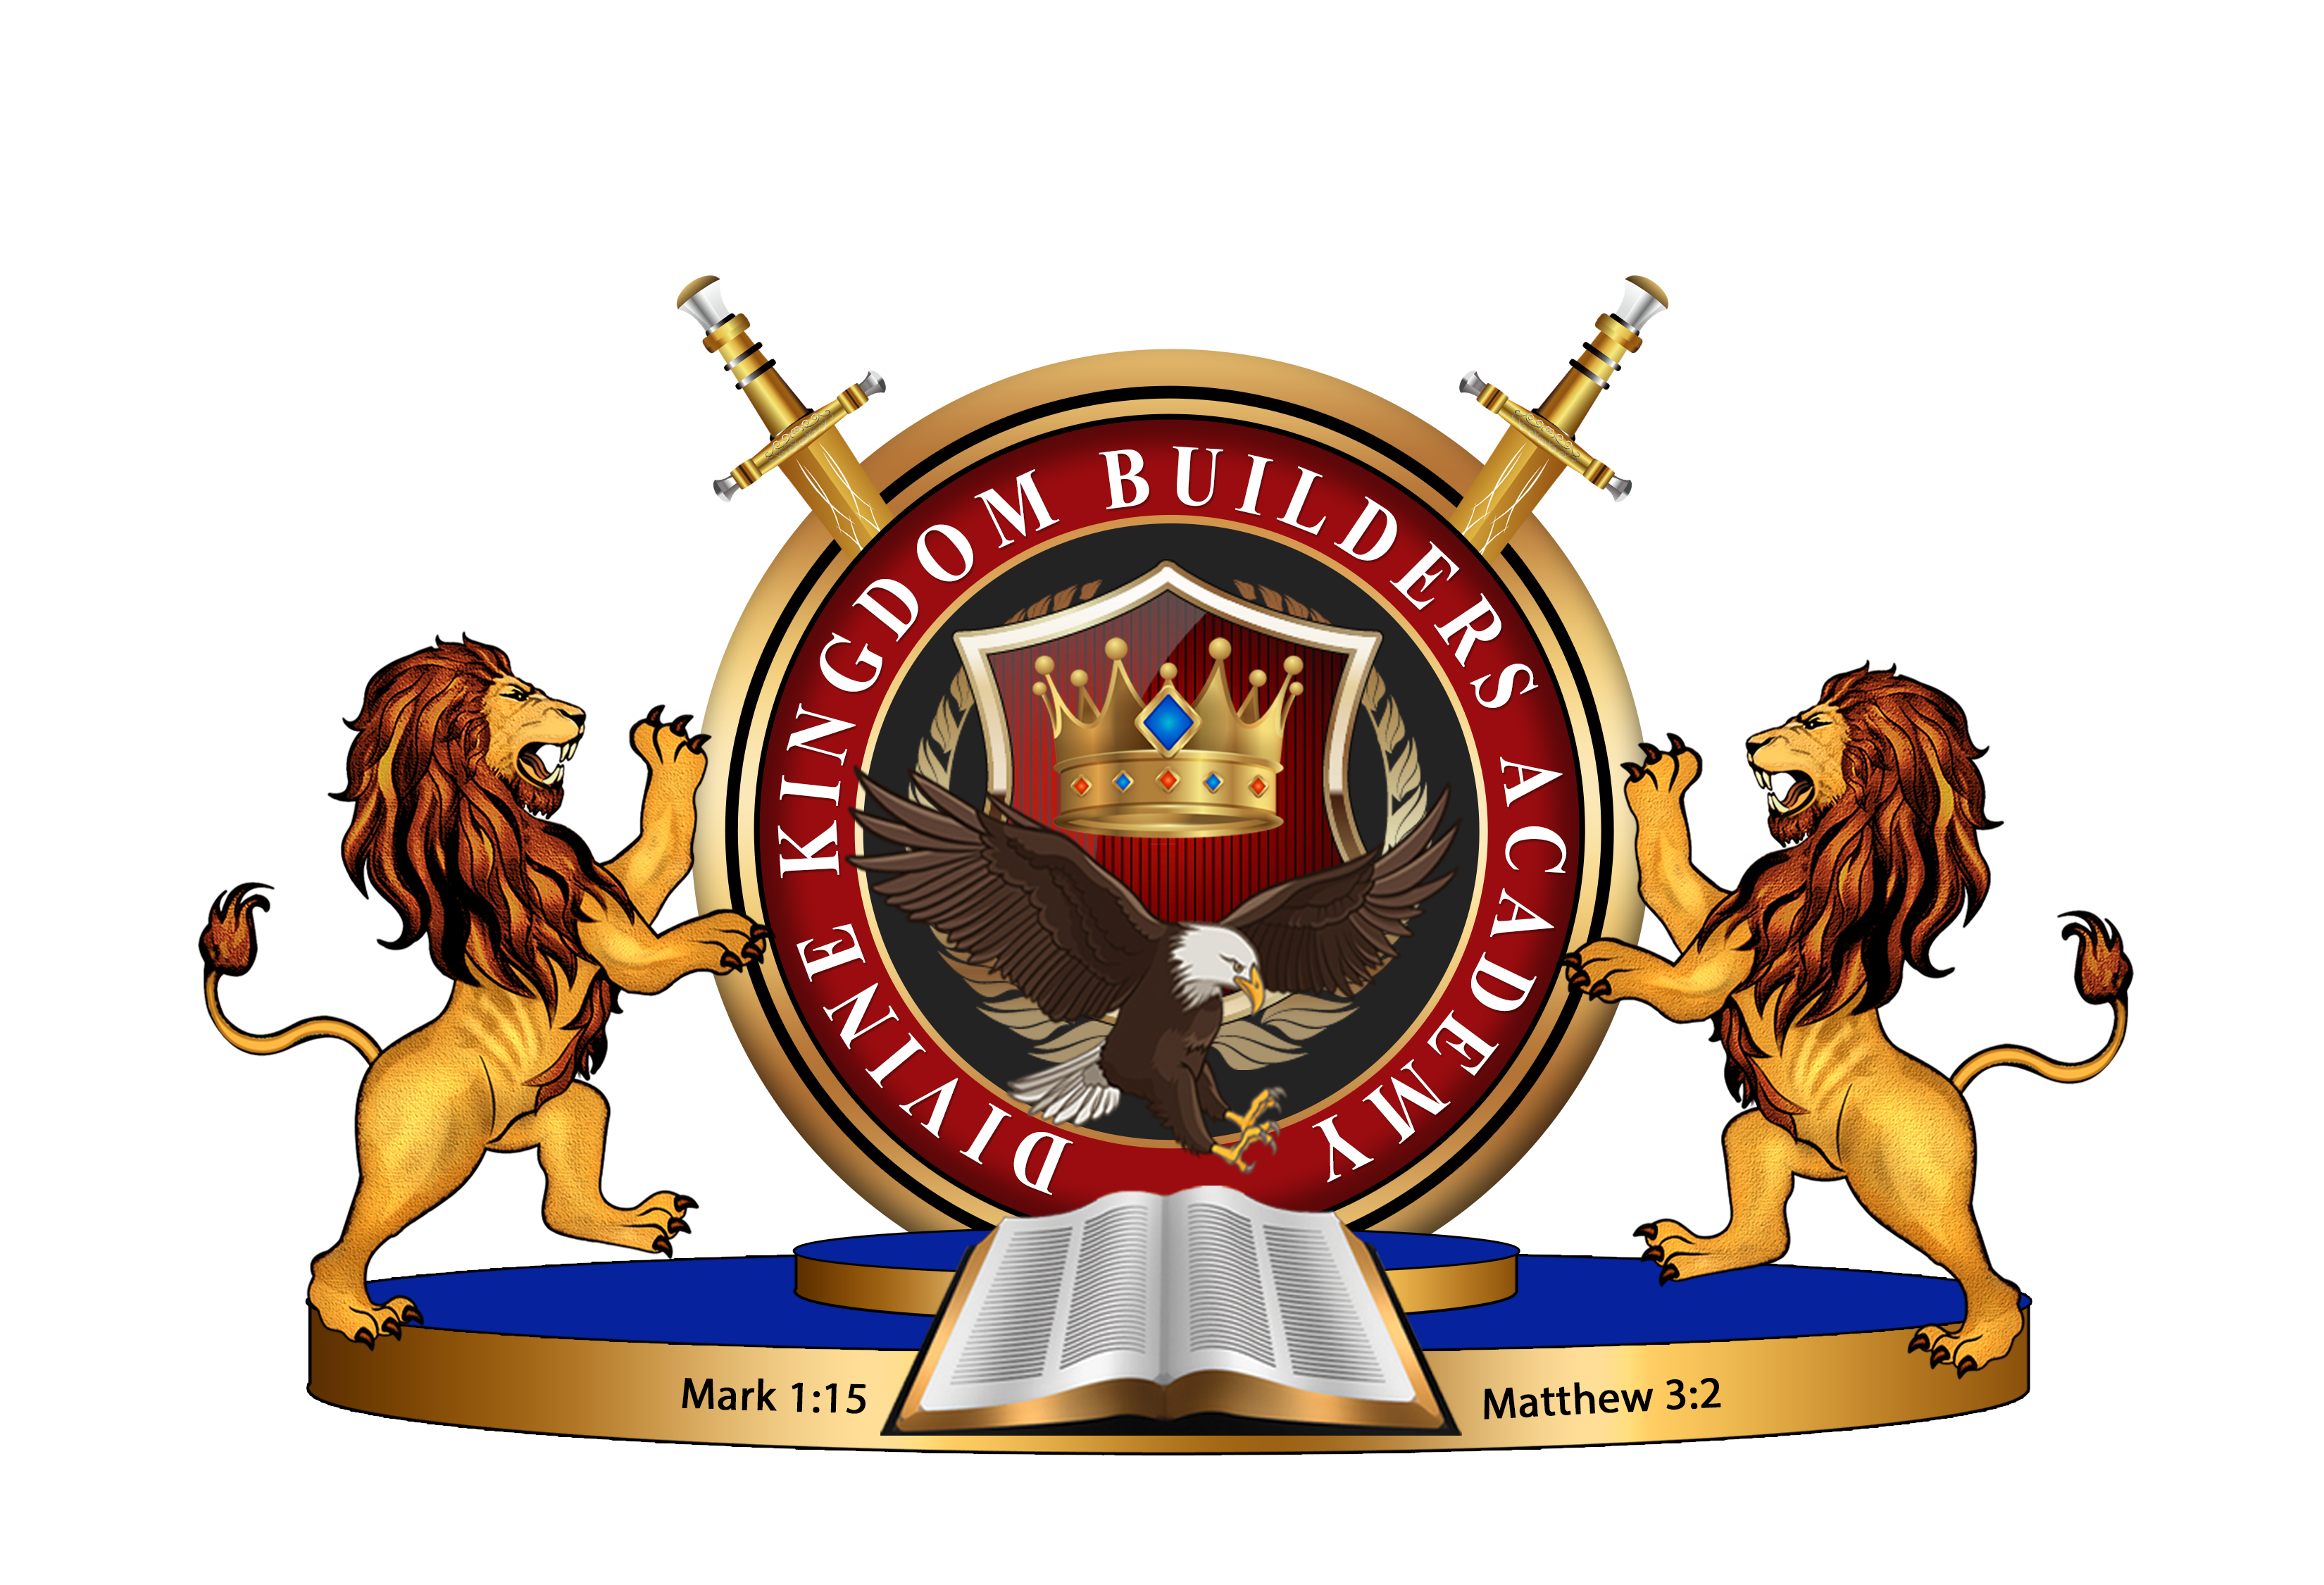 DIVINE KINGDOM BUILDERS ACADEMY